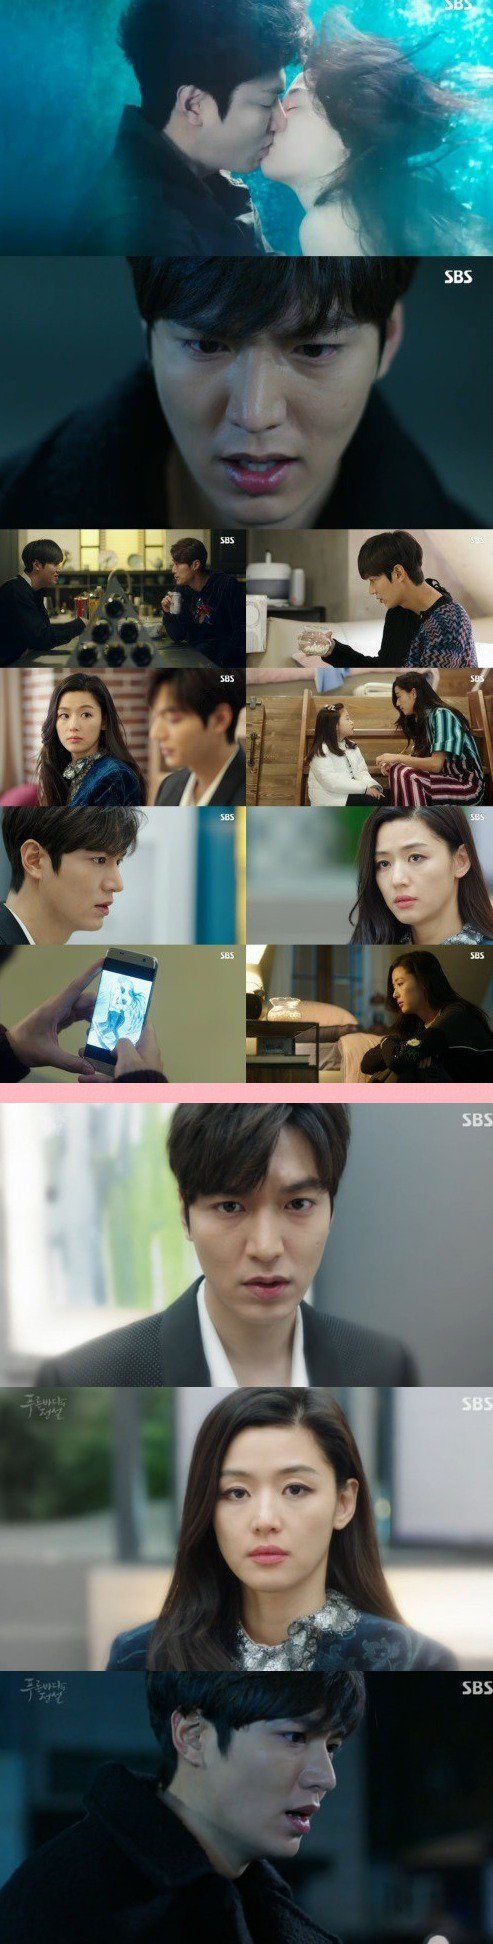 [Spoiler] Added episode 10 captures for the #kdrama 'The Legend of the Blue Sea'인터넷바카라인터넷바카라인터넷바카라인터넷바카라인터넷바카라인터넷바카라인터넷바카라인터넷바카라인터넷바카라인터넷바카라